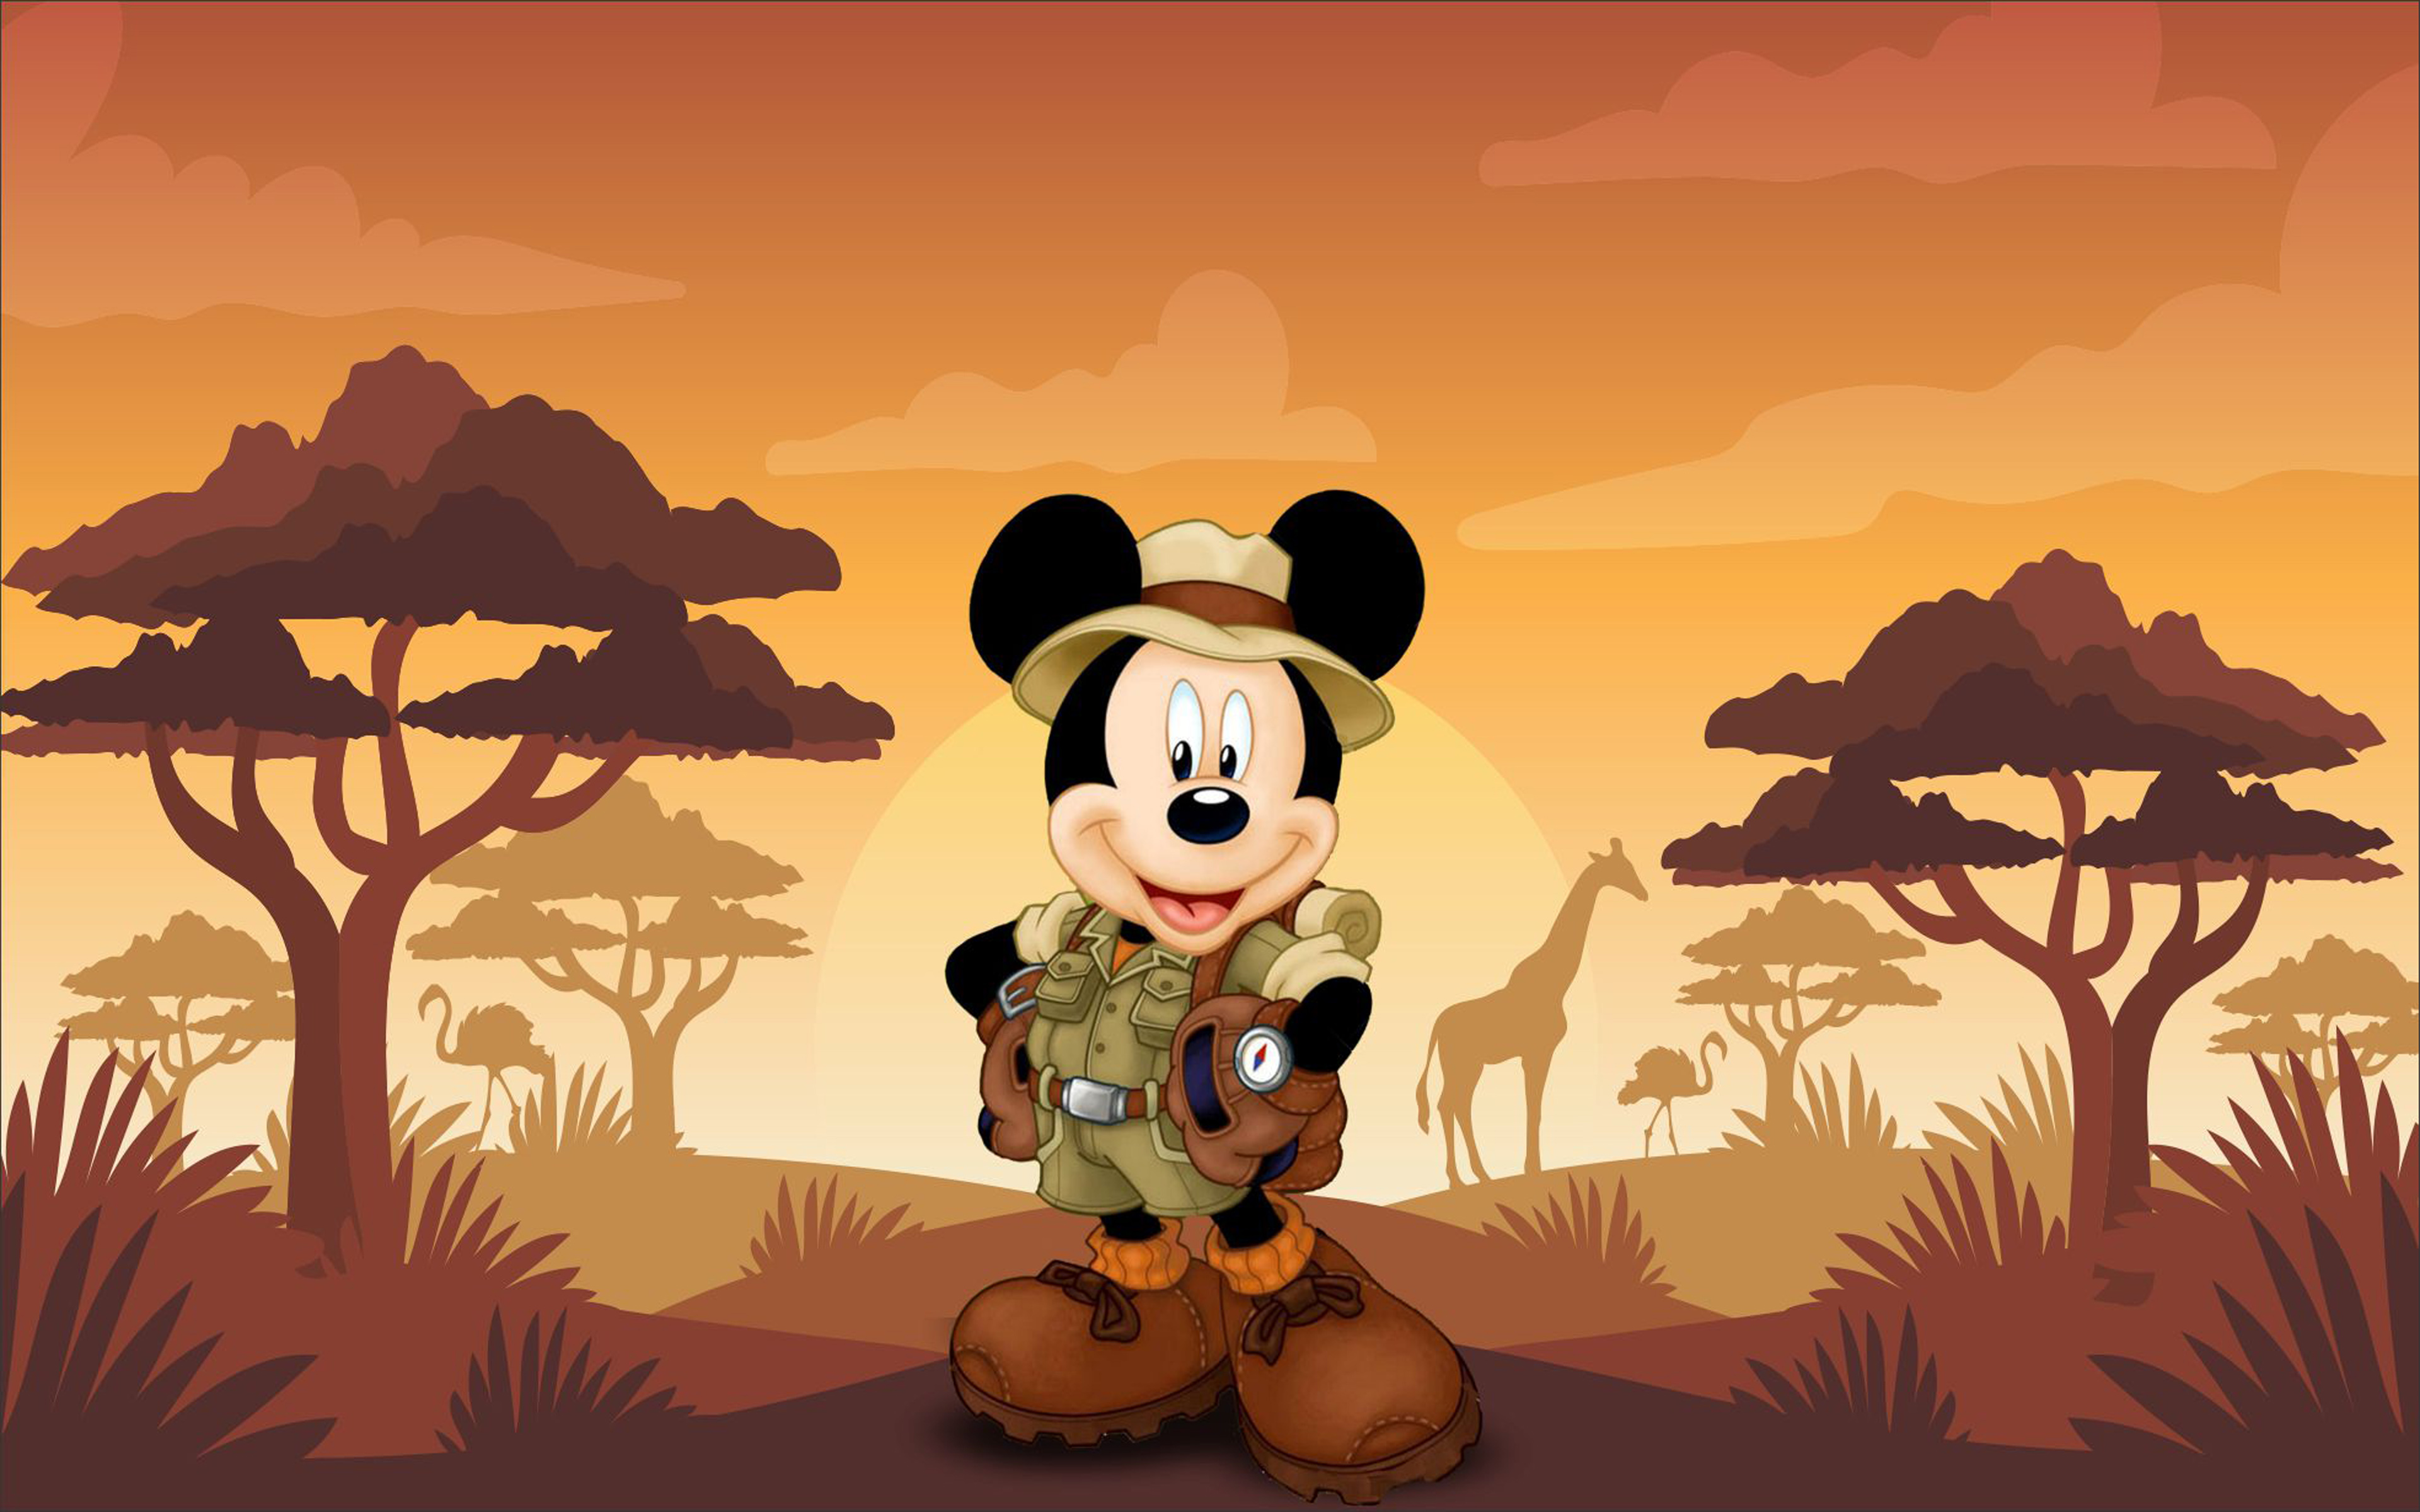 Daisy Iphone Wallpaper Mickey Mouse Cartoon Safari Sunset Hd Wallpaper 3840x2400